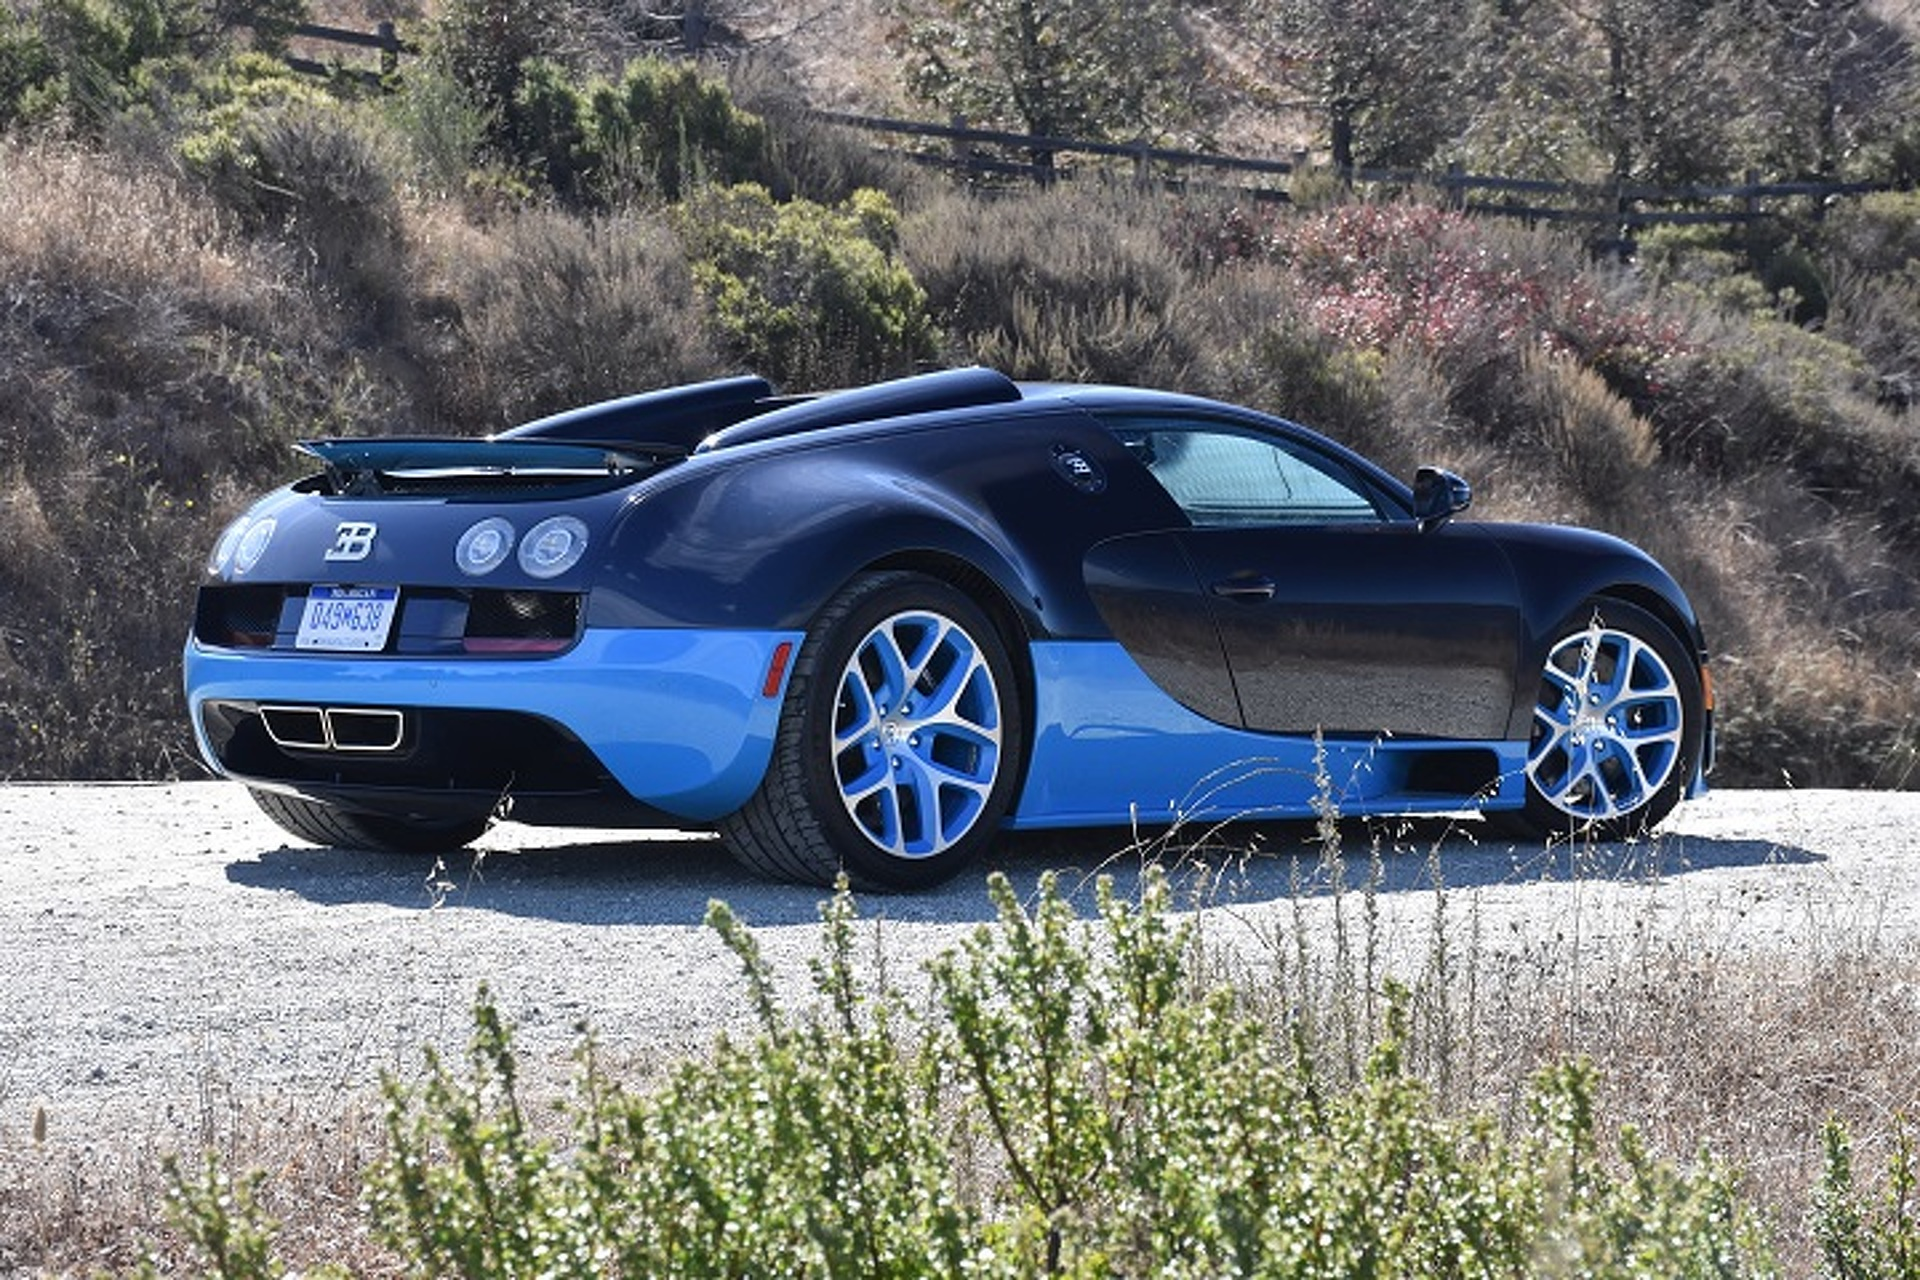 the-bugatti-veyron-is-the-closest-youll-get-to-a-fighter-jet-first-drive Extraordinary Bugatti Veyron Grand Sport Vitesse Specs Cars Trend